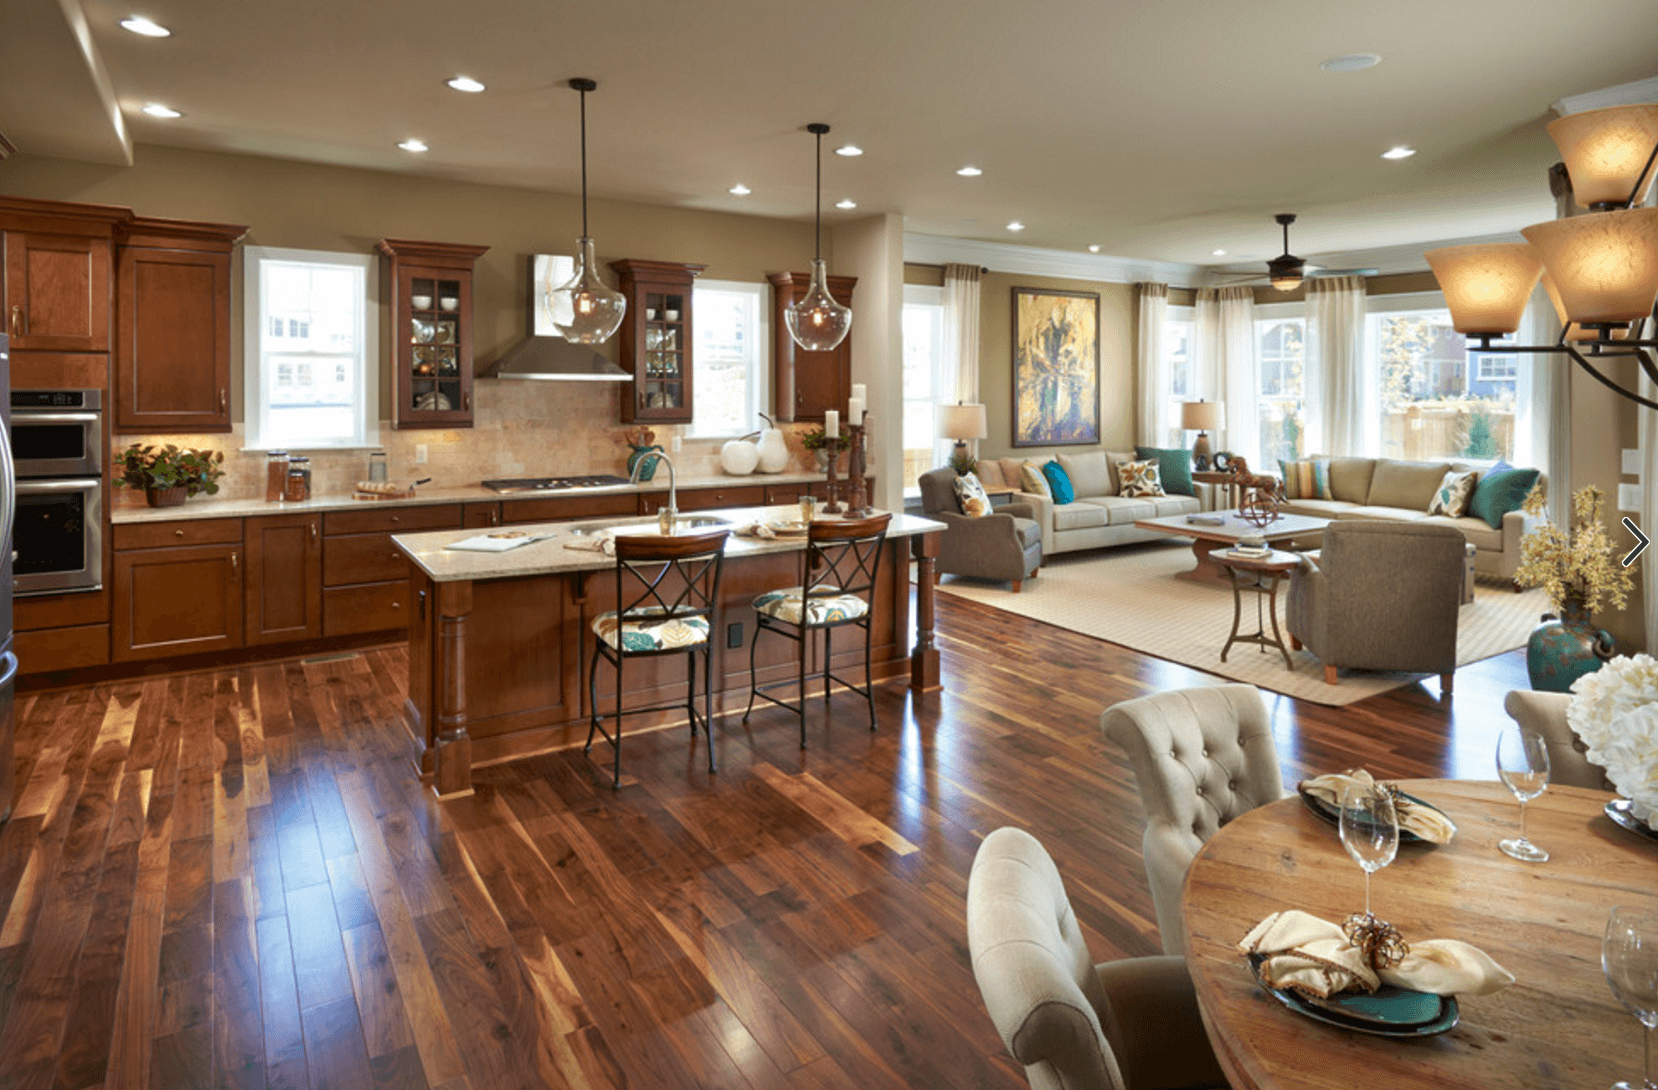 gleaming wood flooring ties the space together - 6 great reasons to